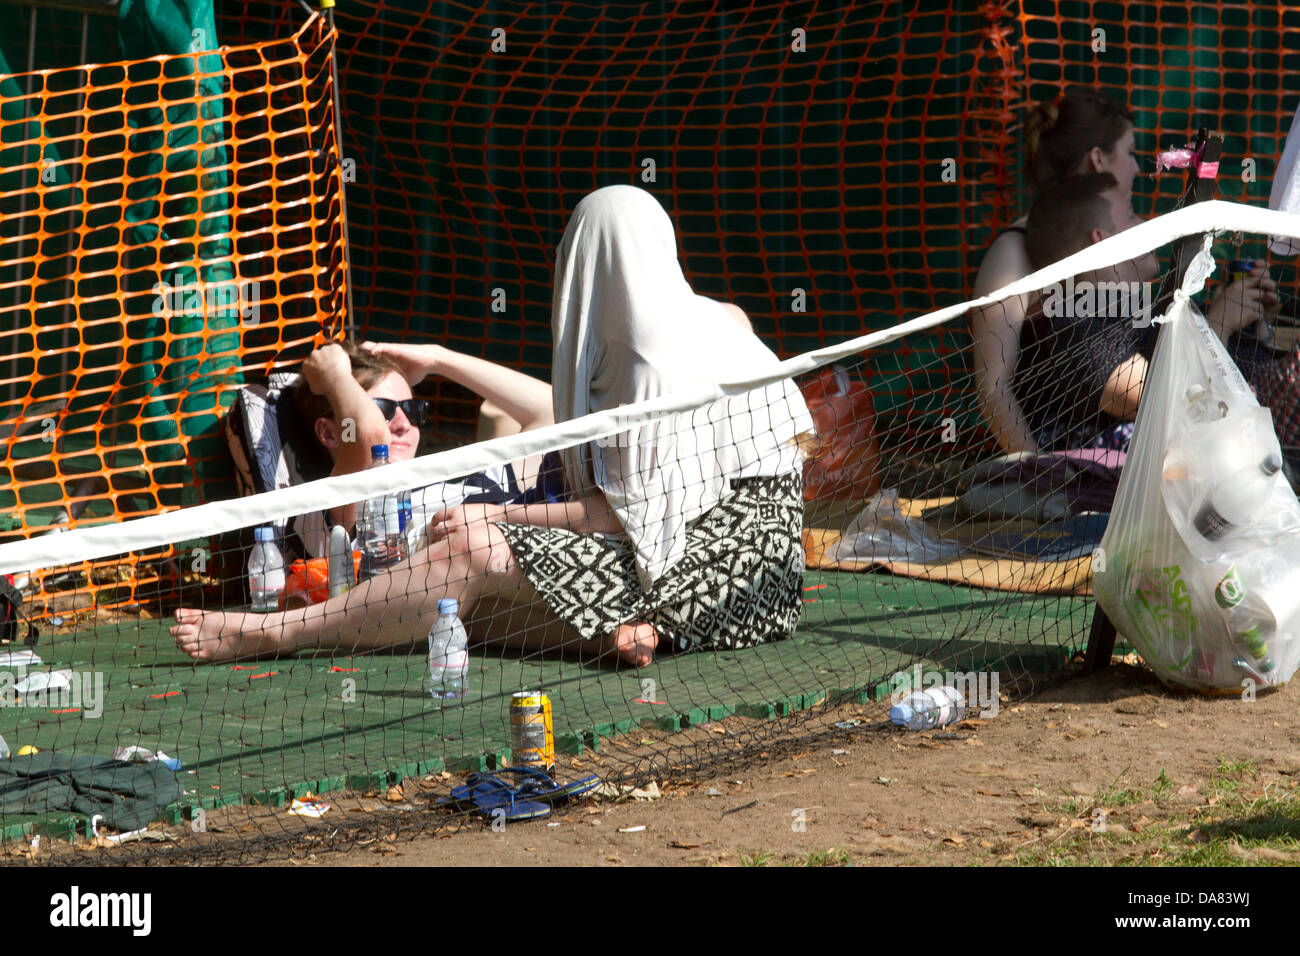 7th July 2013. Wimbledon London UK. Thousands of fans camp out for ground tickets to watch the men's final between - Stock Image